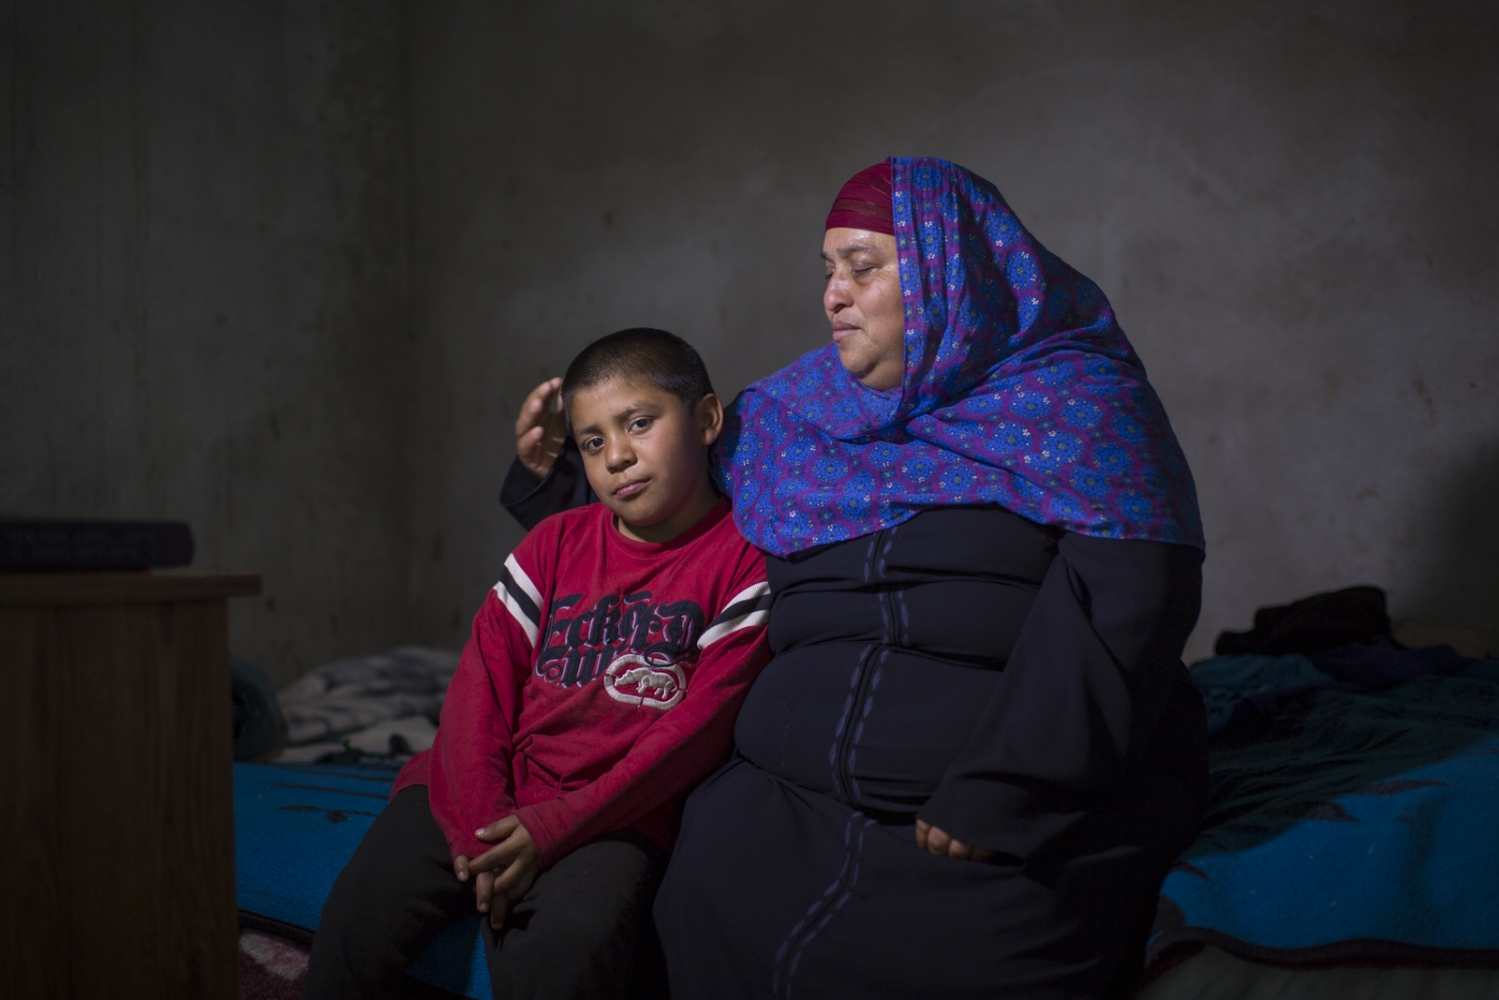 Maria Luna and her 8 year-old son Israel sit on the bed that they share in the cold dark room where they live next to a stable in Rosarito, Mexico. Luna wakes up at 5am every day to feed the horses and clean the horse manure. In exchange for her work, they pay her 200 pesos (approximately 12 USD) and let her and her son stay in the room. Maria converted to Islam only 2 months ago, which represents a very small percentage of the community in Mexico.